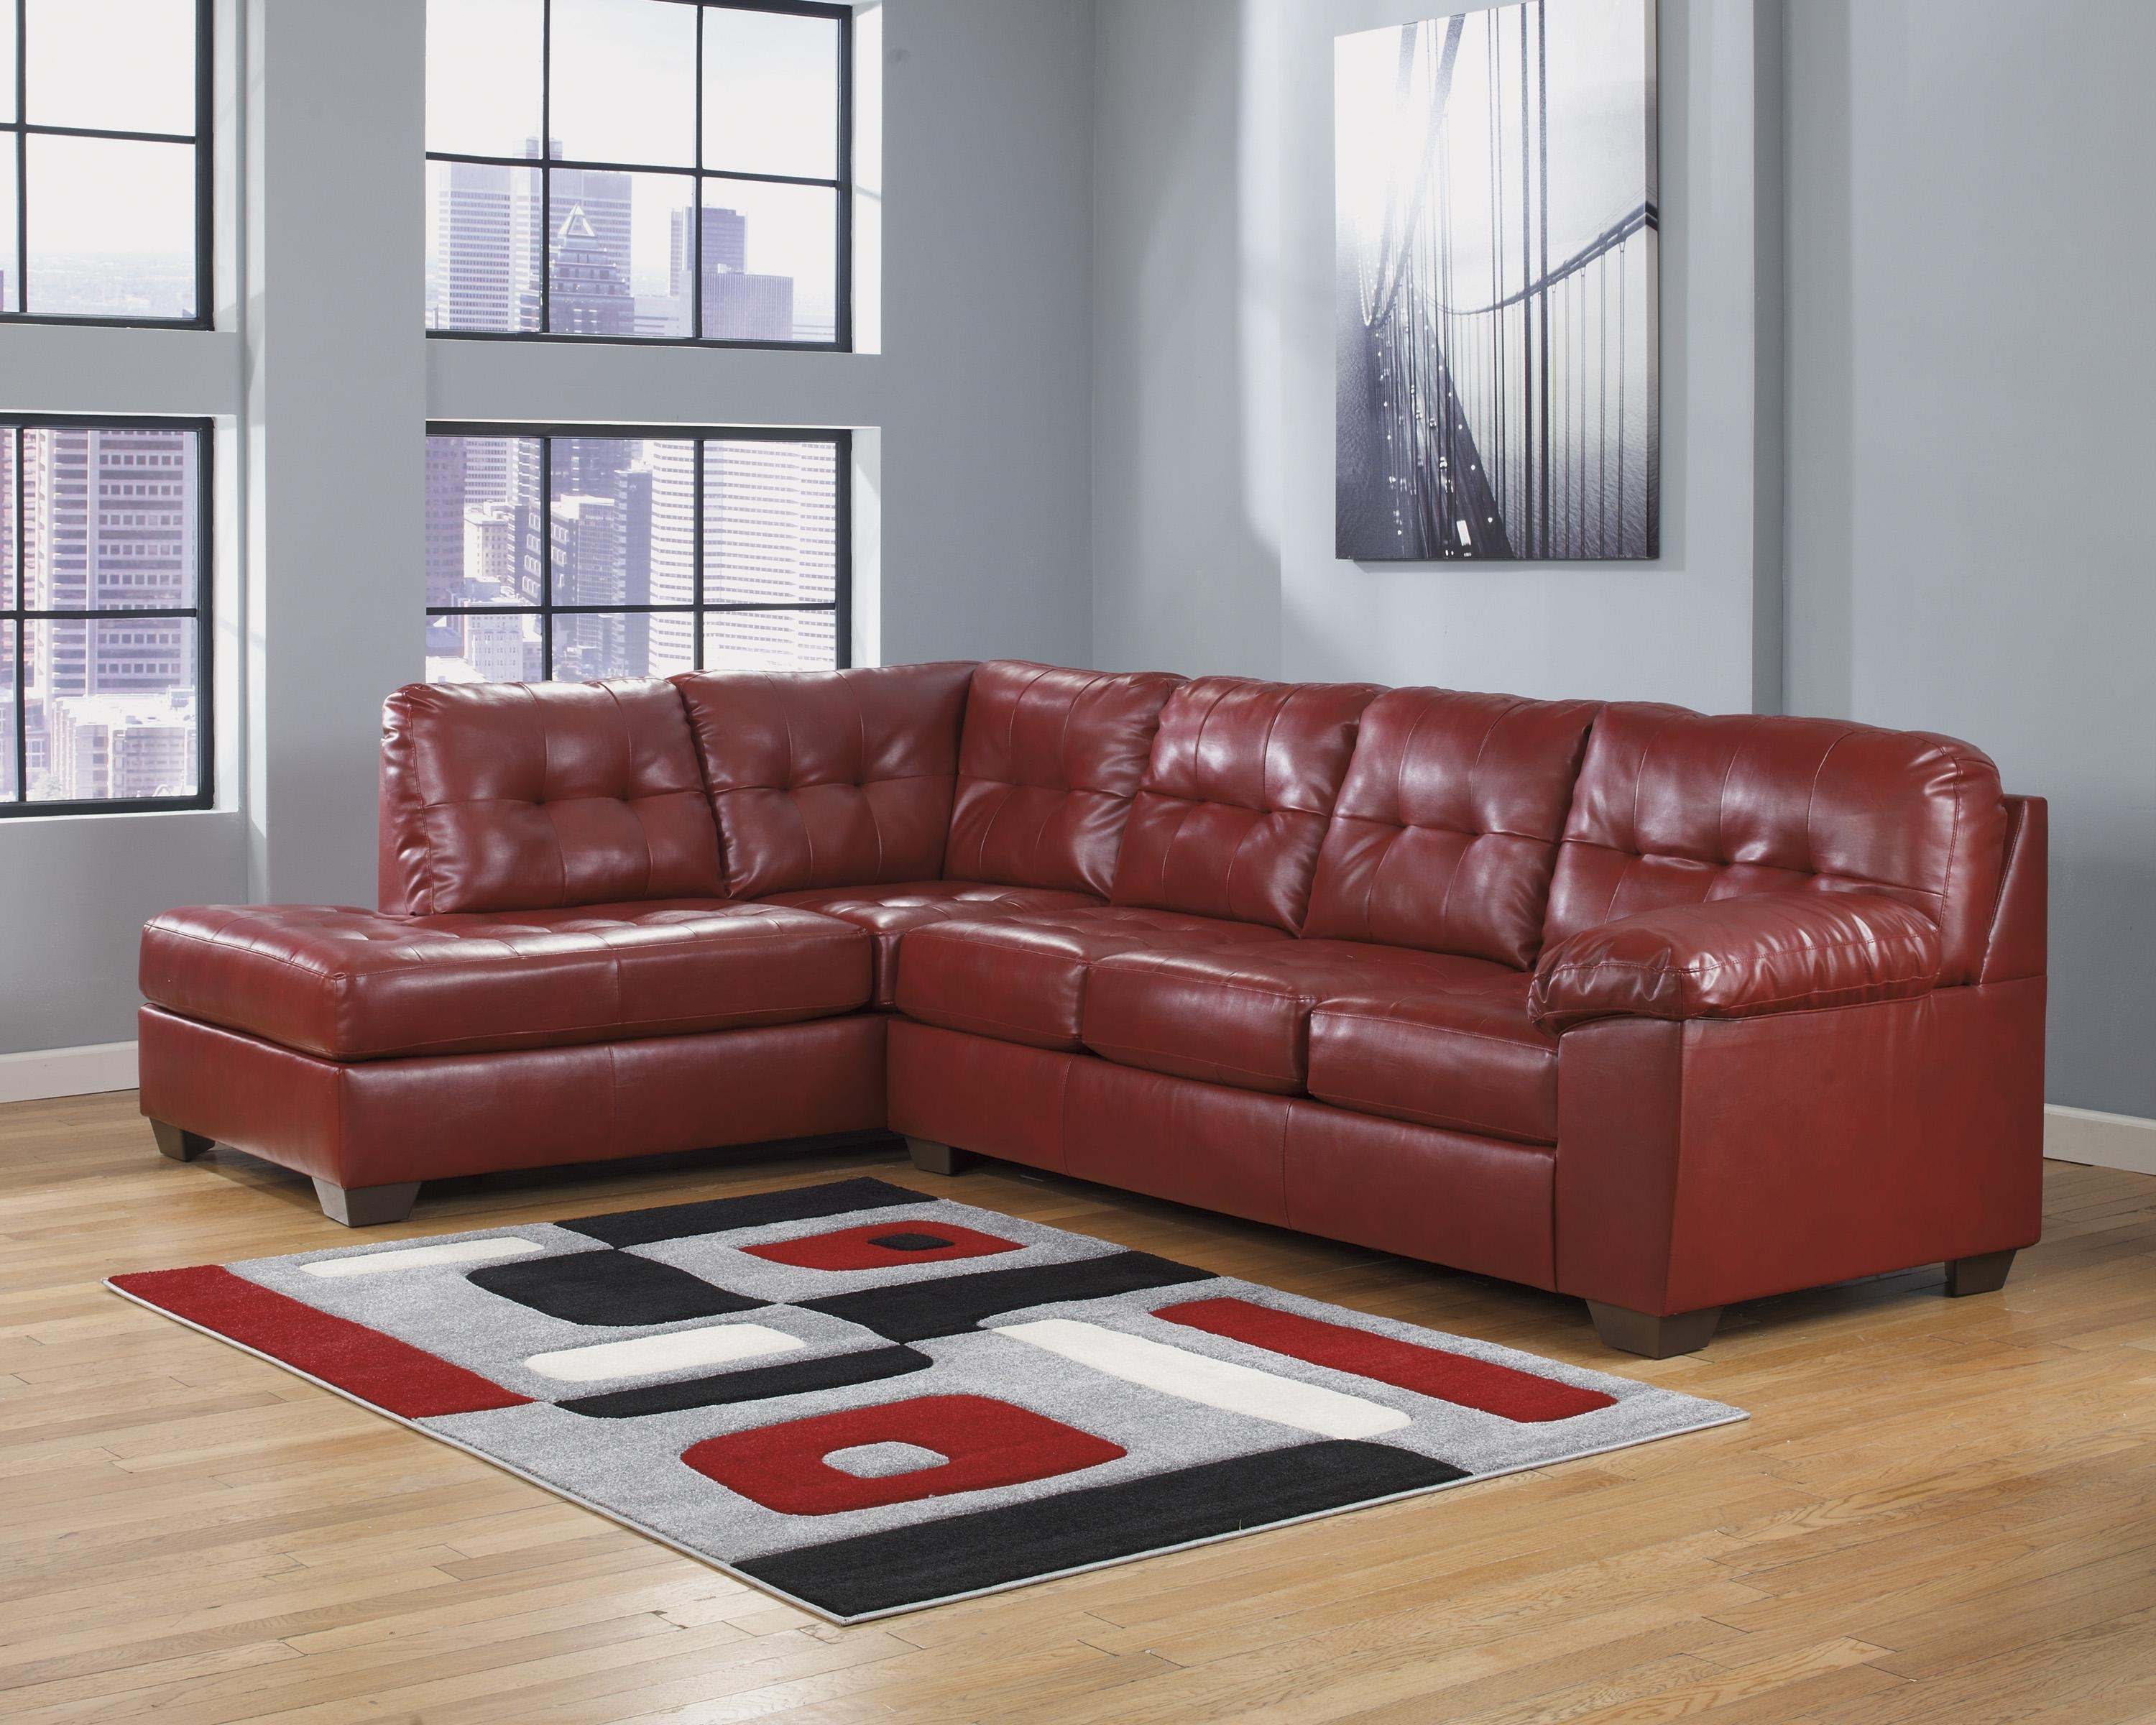 Sectional Sofa Ashley Furniture | Sofa Gallery | Kengire Intended For Ashley Furniture Corduroy Sectional Sofas (Image 9 of 20)